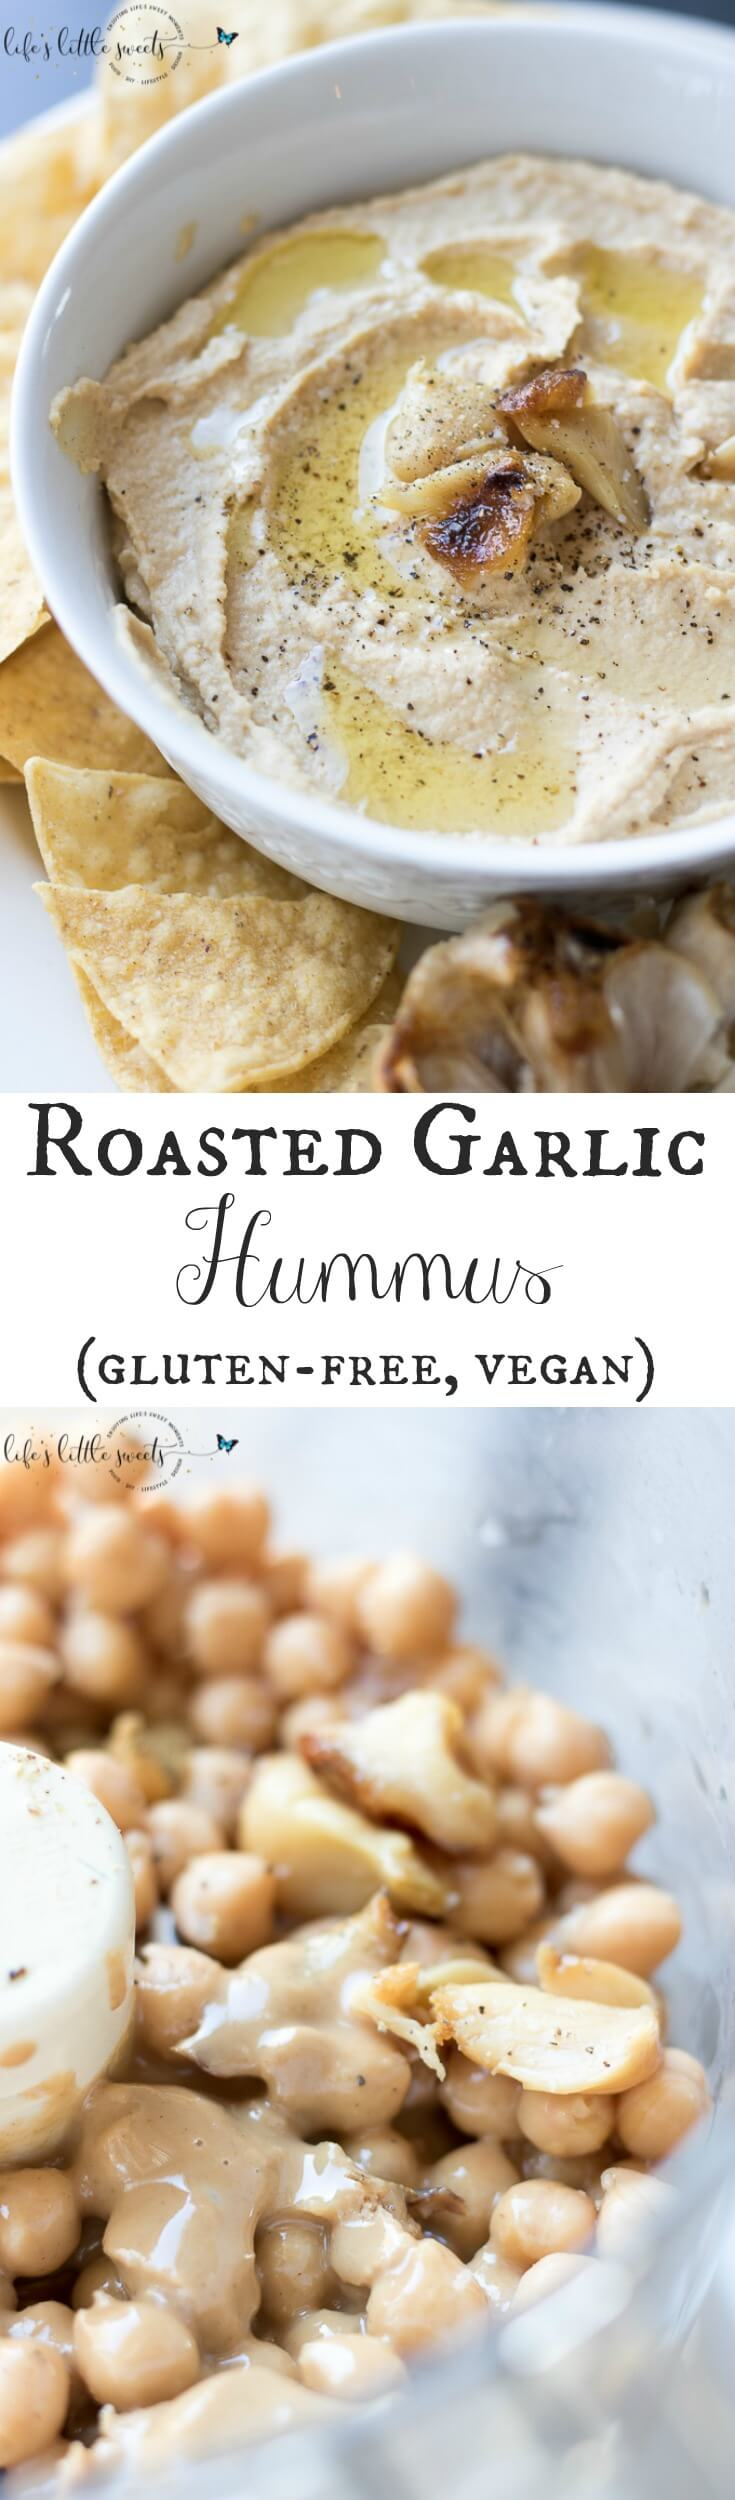 This Roasted Garlic Hummus is easy, full-flavored and delicious, with only a minimum of 6 ingredients! (gluten-free, vegan) #garlic #roasted #Koshersalt #blackpepper #cumin #tahini #appetizer #vegan #glutenfree